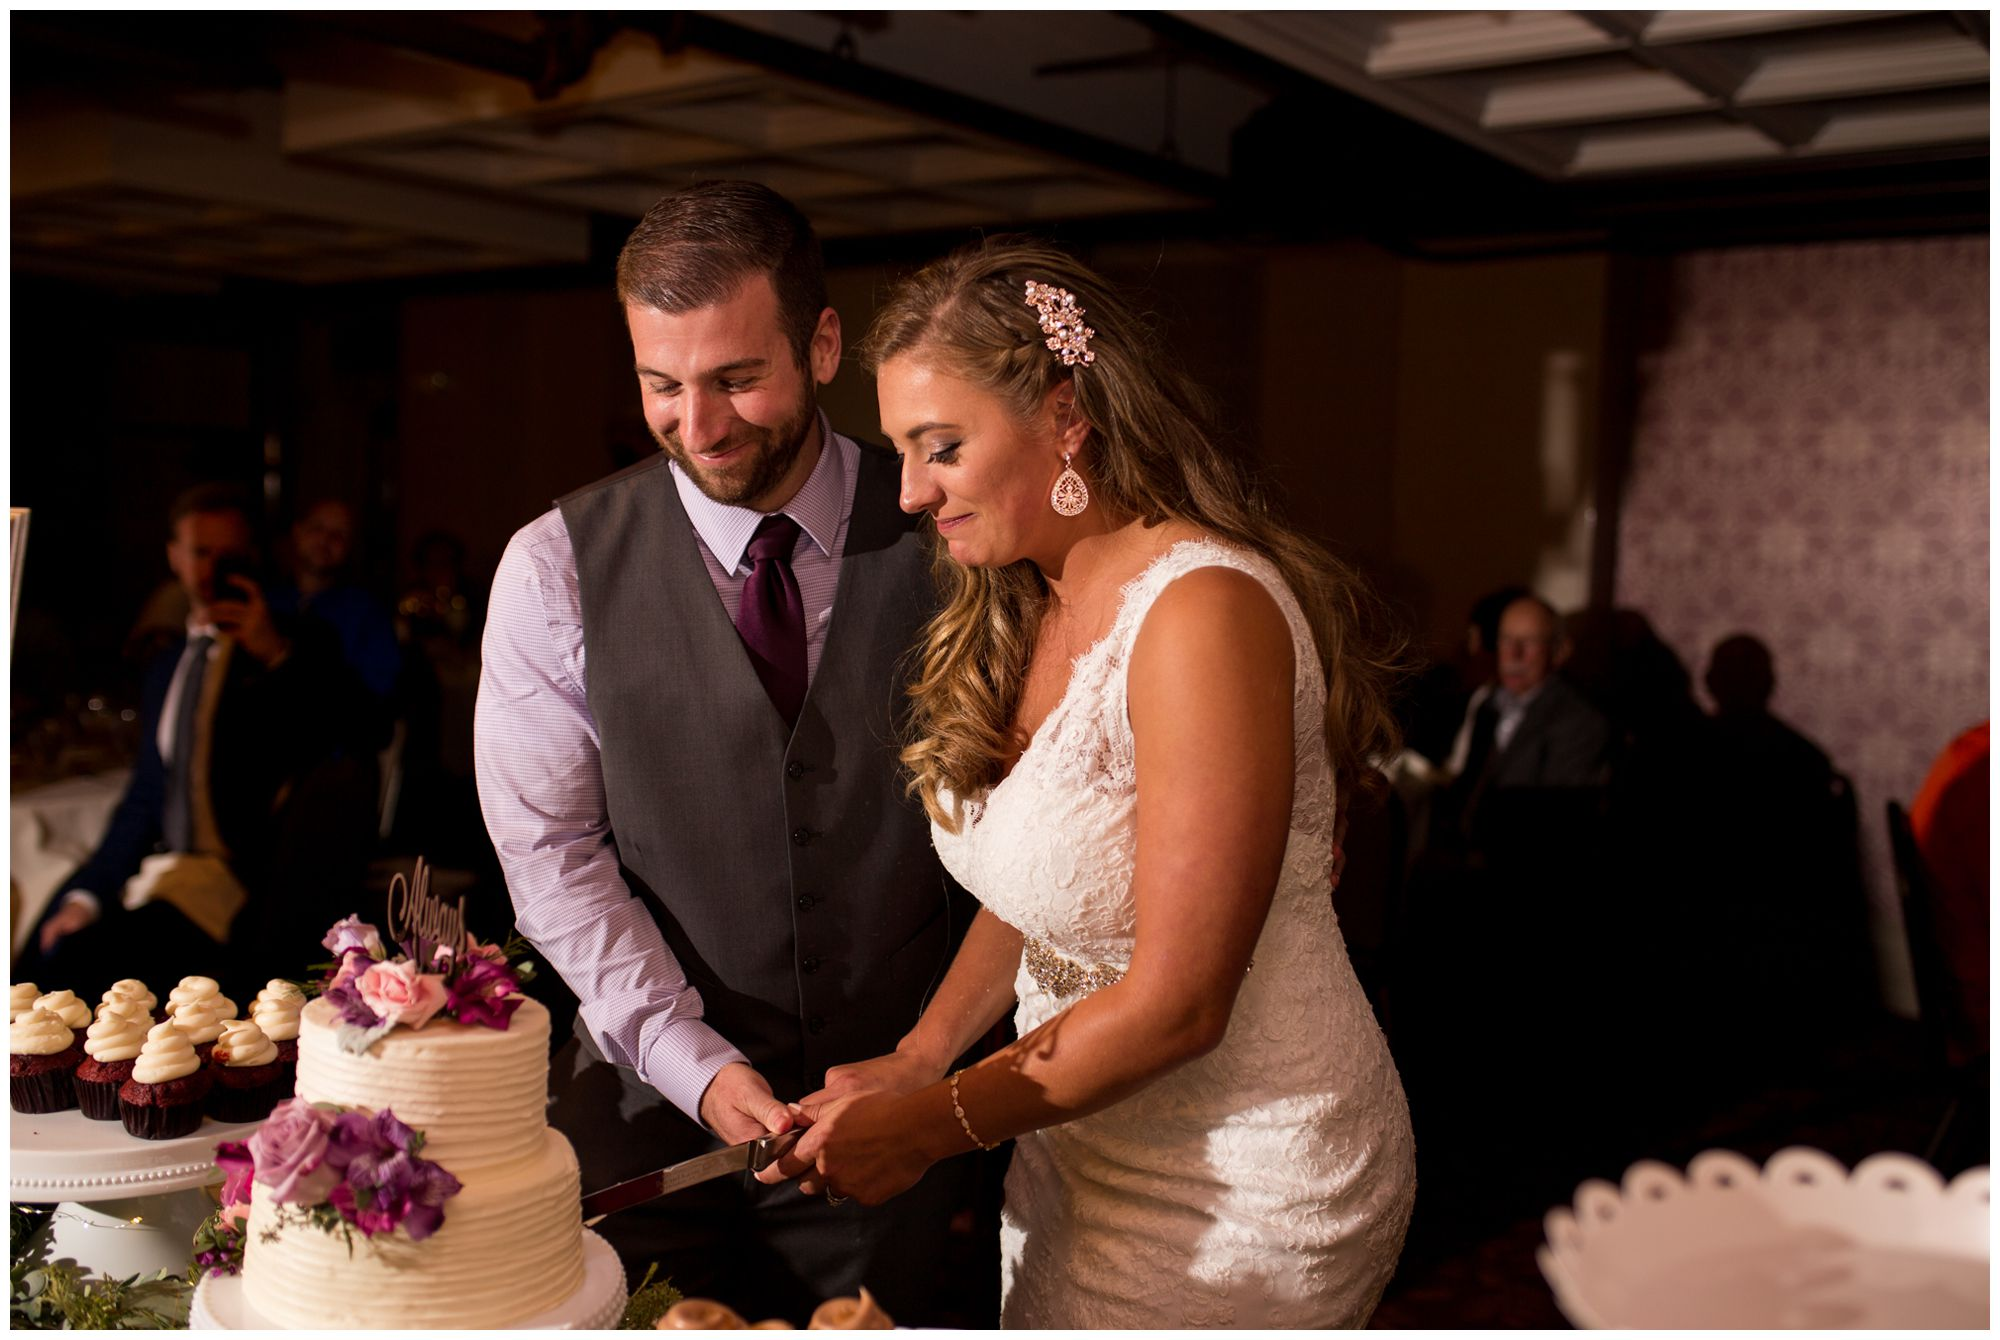 bride and groom cutting cake during Wabash Indiana wedding reception at Charley Creek Inn